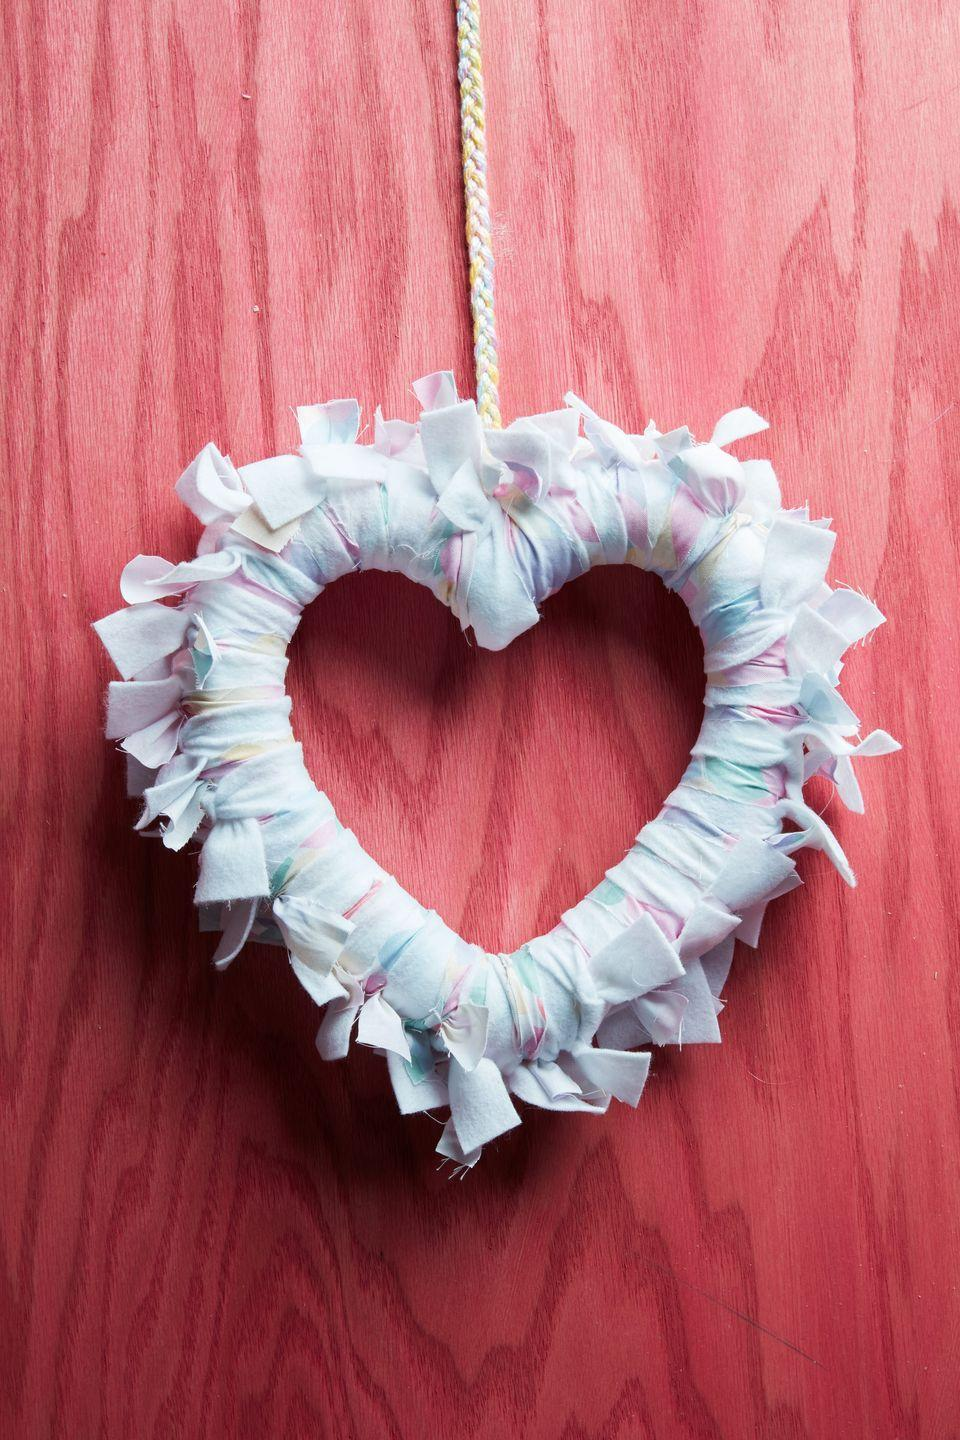 "<p>Wrap strips of soft flannel around a heart-shaped foam wreath form to create a soft statement piece that says ""I love you!""</p><p><a class=""link rapid-noclick-resp"" href=""https://www.amazon.com/Decorate-Garland-Valentines-Decoration-Rely2016/dp/B0799MLQTQ/ref=sr_1_9?tag=syn-yahoo-20&ascsubtag=%5Bartid%7C10050.g.1584%5Bsrc%7Cyahoo-us"" rel=""nofollow noopener"" target=""_blank"" data-ylk=""slk:SHOP WREATH FORM"">SHOP WREATH FORM</a></p>"